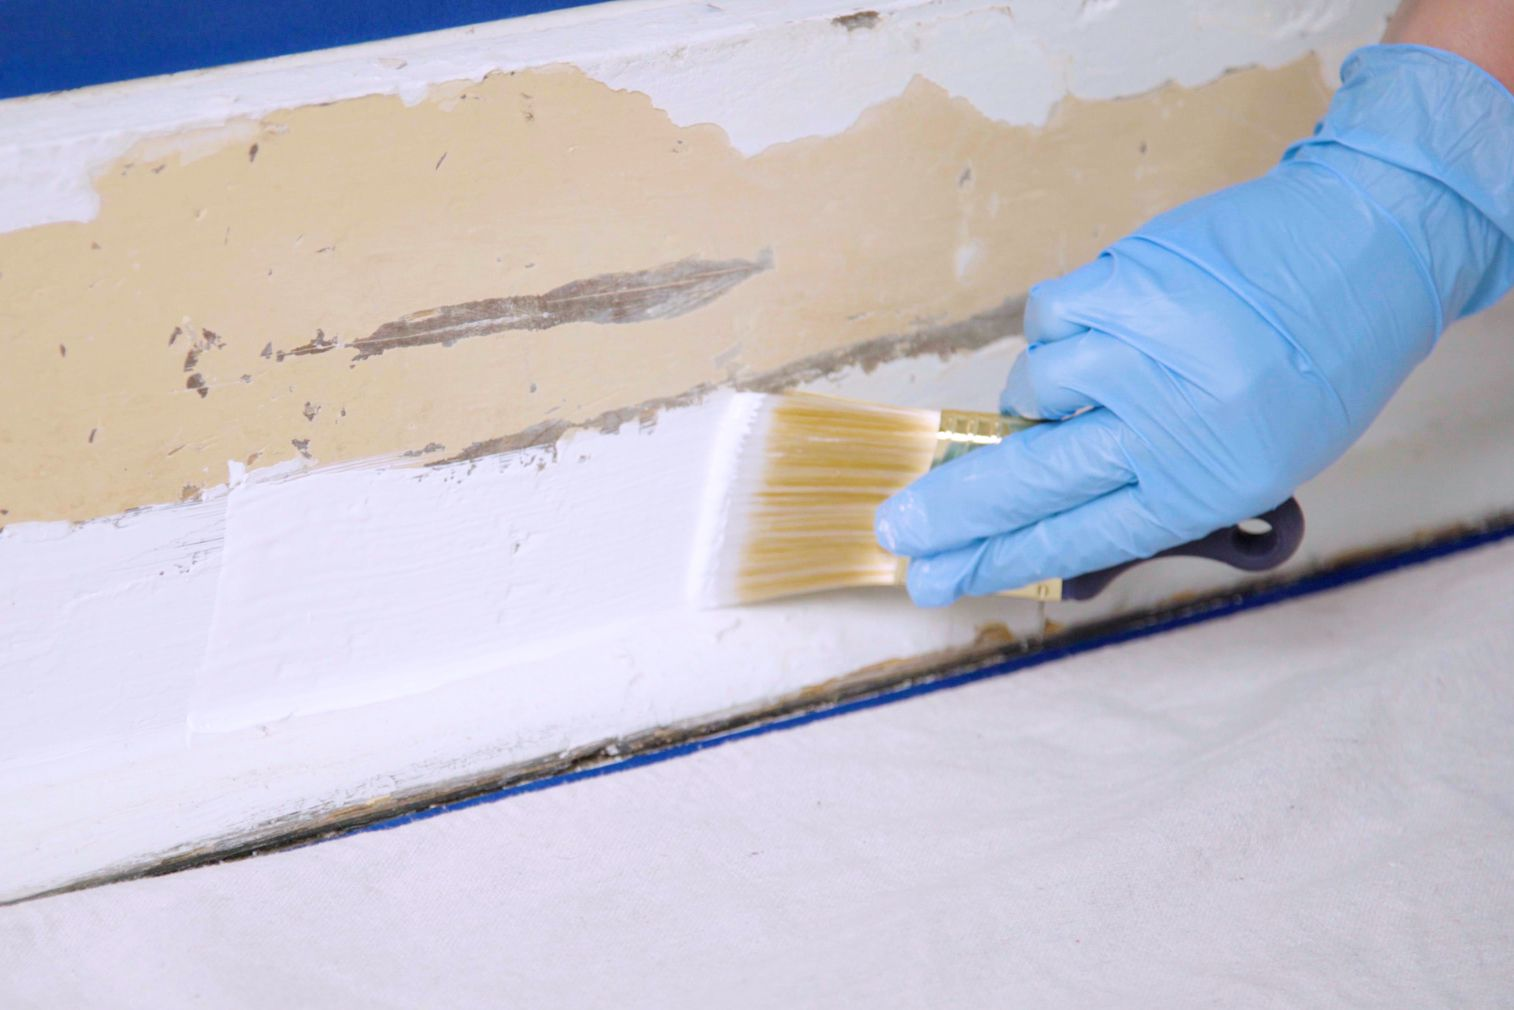 Baseboard lightly primed with white primer coat with blue gloves